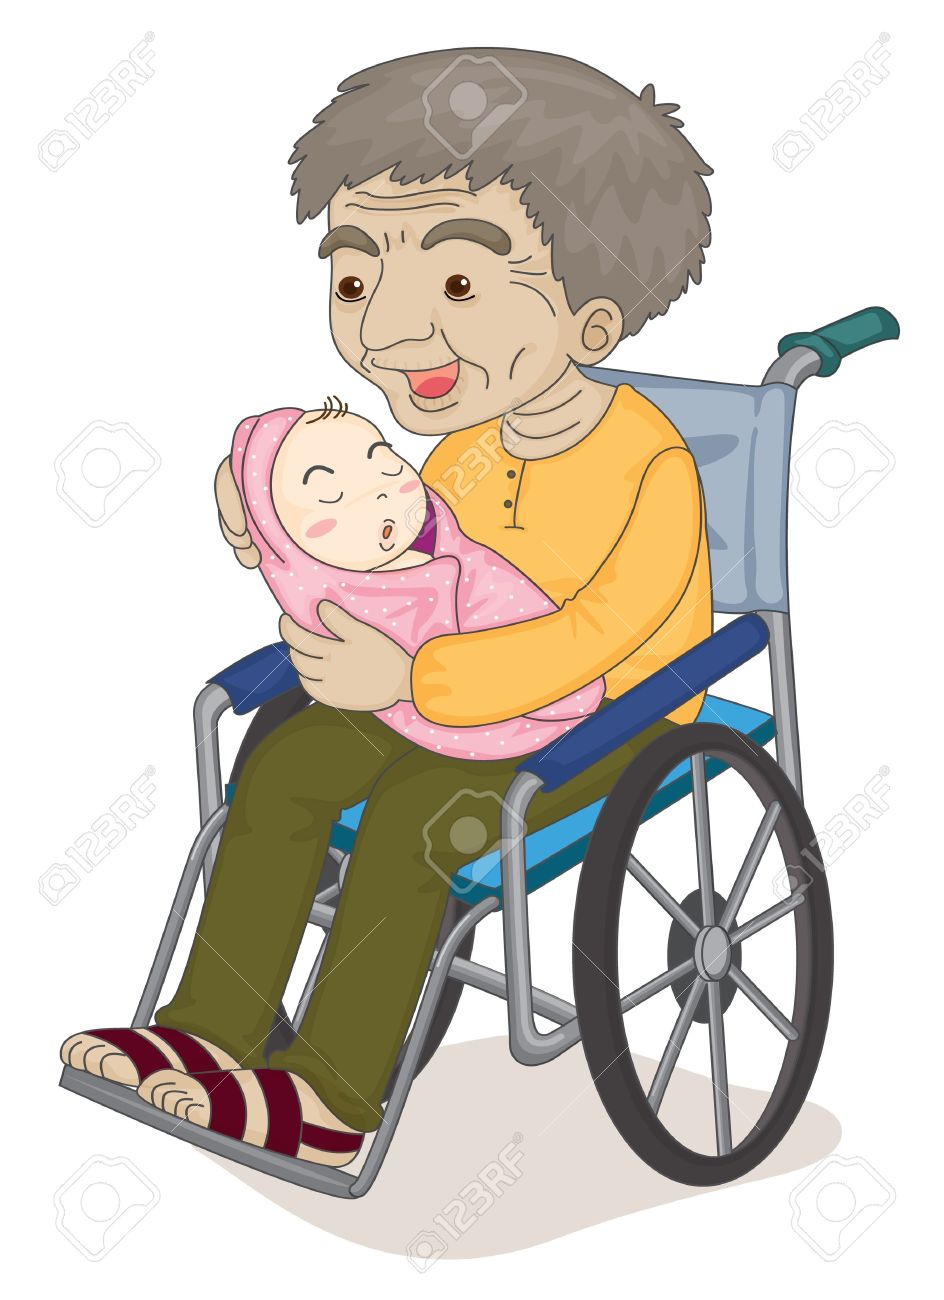 Child teen old man clipart clipground for Sedia a rotelle cartoon